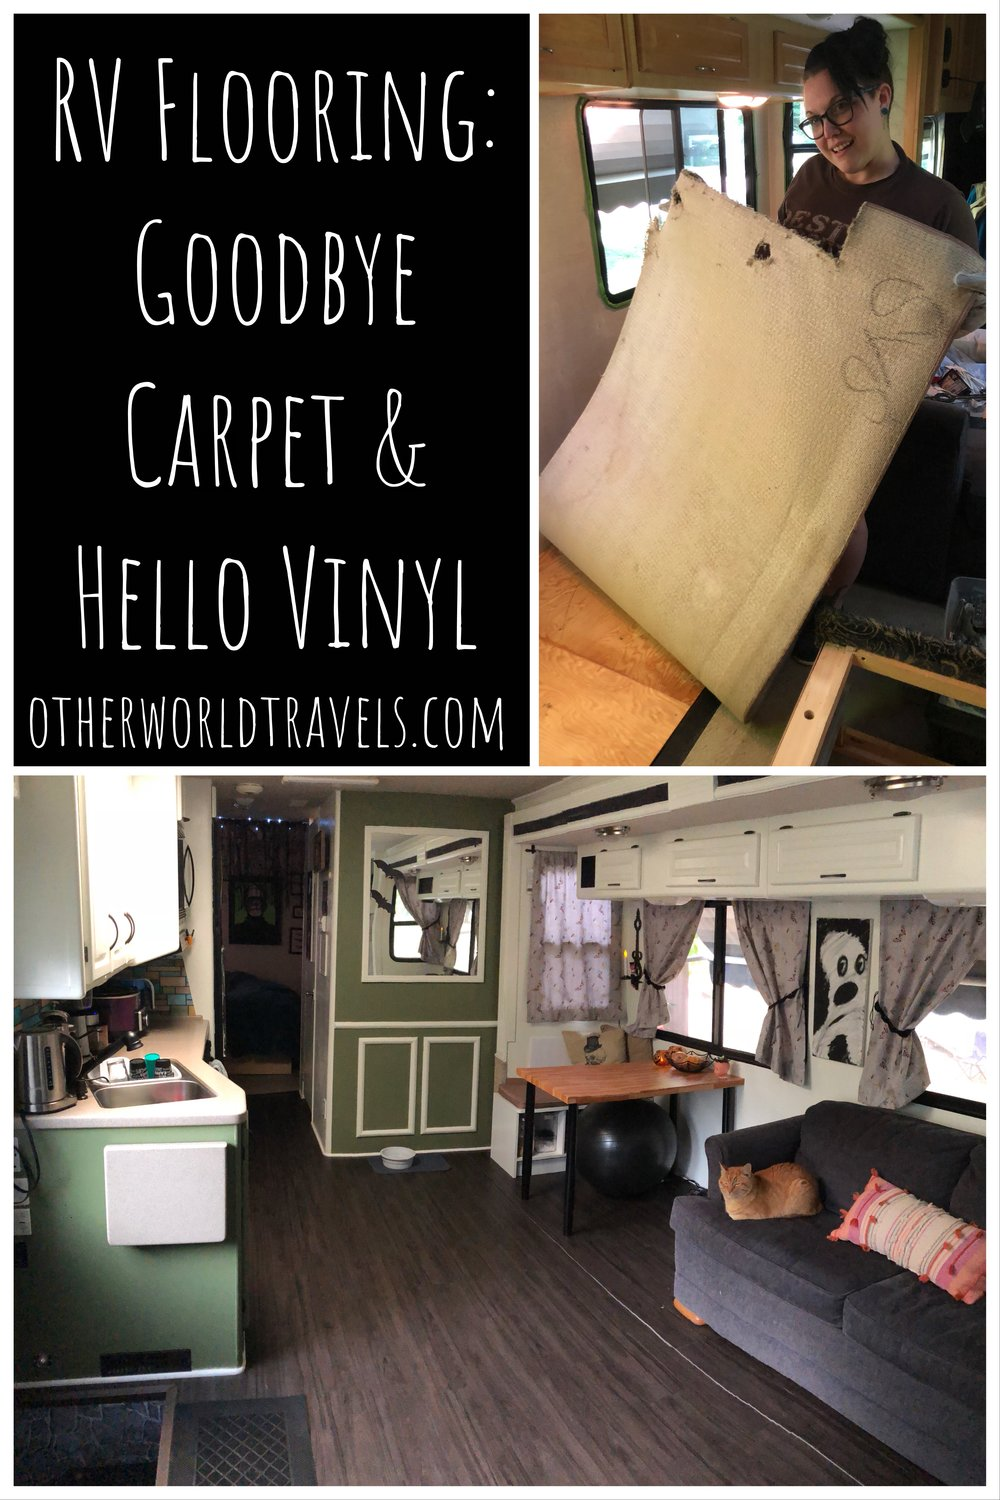 Rv Flooring Goodbye Carpet And O, Replacing Carpet With Laminate Flooring In Rv